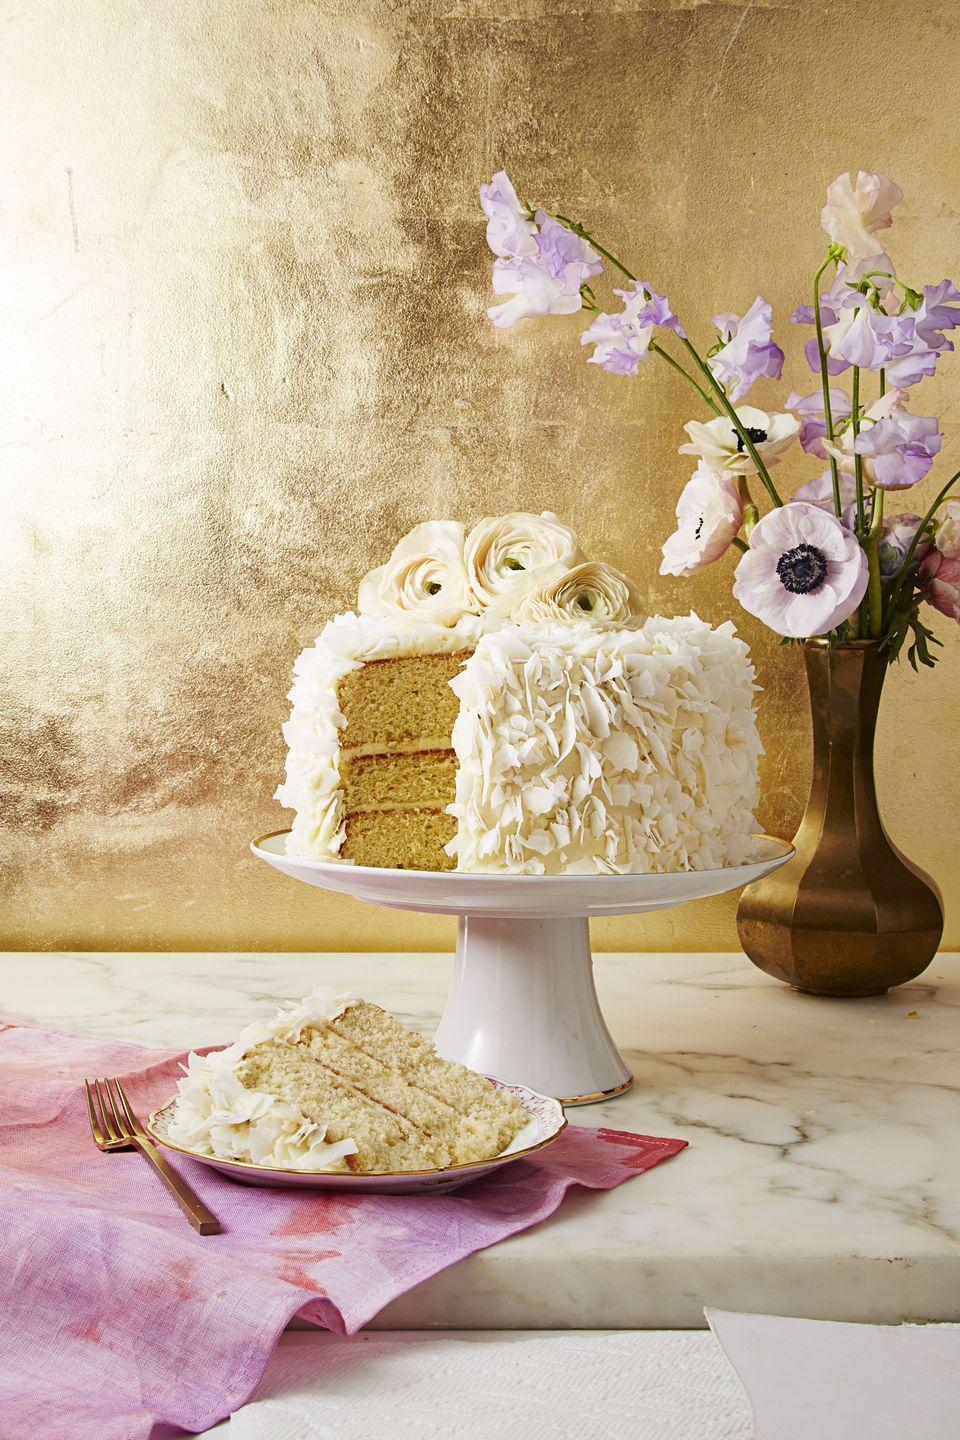 """<p>Three layers + creamy frosting = Mom's dream come true.</p><p><em><a href=""""https://www.goodhousekeeping.com/food-recipes/a37460/coconut-layer-cake-with-cream-cheese-frosting-recipe/"""" rel=""""nofollow noopener"""" target=""""_blank"""" data-ylk=""""slk:Get the recipe for Coconut Layer Cake with Cream Cheese Frosting »"""" class=""""link rapid-noclick-resp"""">Get the recipe for Coconut Layer Cake with Cream Cheese Frosting »</a><strong><br></strong></em></p><p><strong>RELATED:</strong> <a href=""""https://www.goodhousekeeping.com/holidays/mothers-day/g4283/mothers-day-activities/"""" rel=""""nofollow noopener"""" target=""""_blank"""" data-ylk=""""slk:35 Fun and Creative Mother's Day Activities"""" class=""""link rapid-noclick-resp"""">35 Fun and Creative Mother's Day Activities</a><em><br></em></p>"""